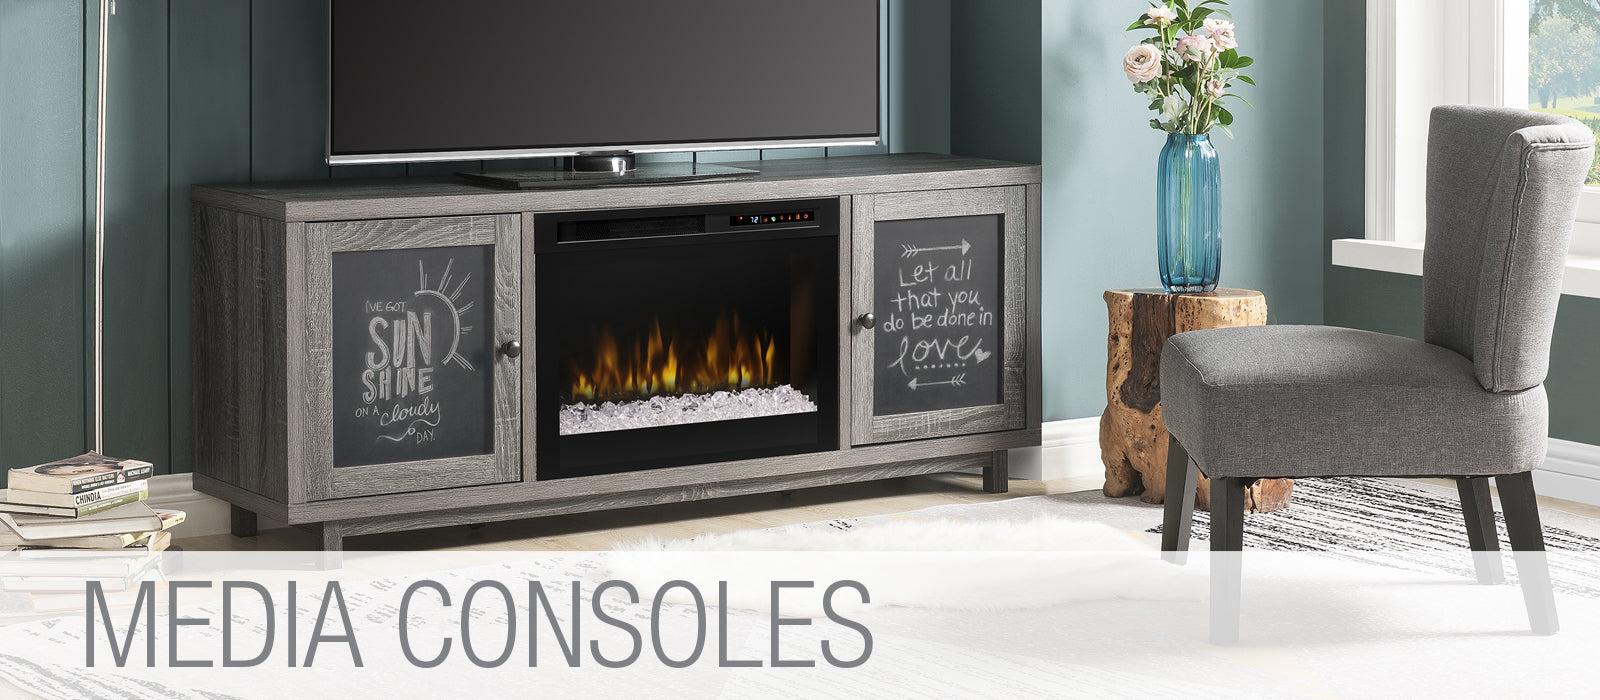 TV Media Console Fireplaces